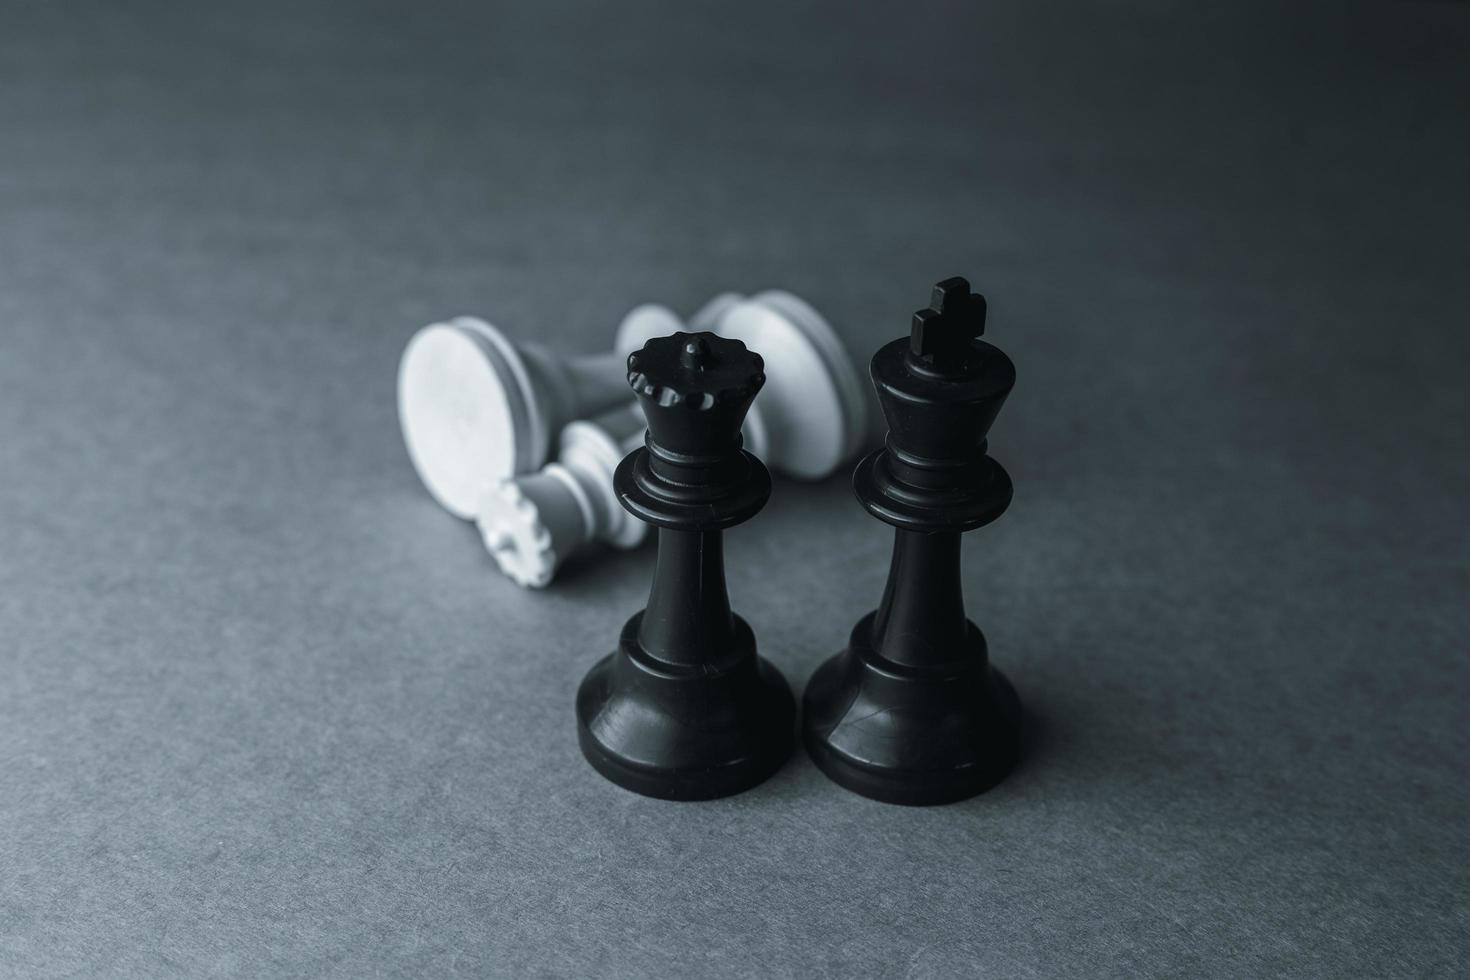 Chess pieces, supremacy of the black pieces photo